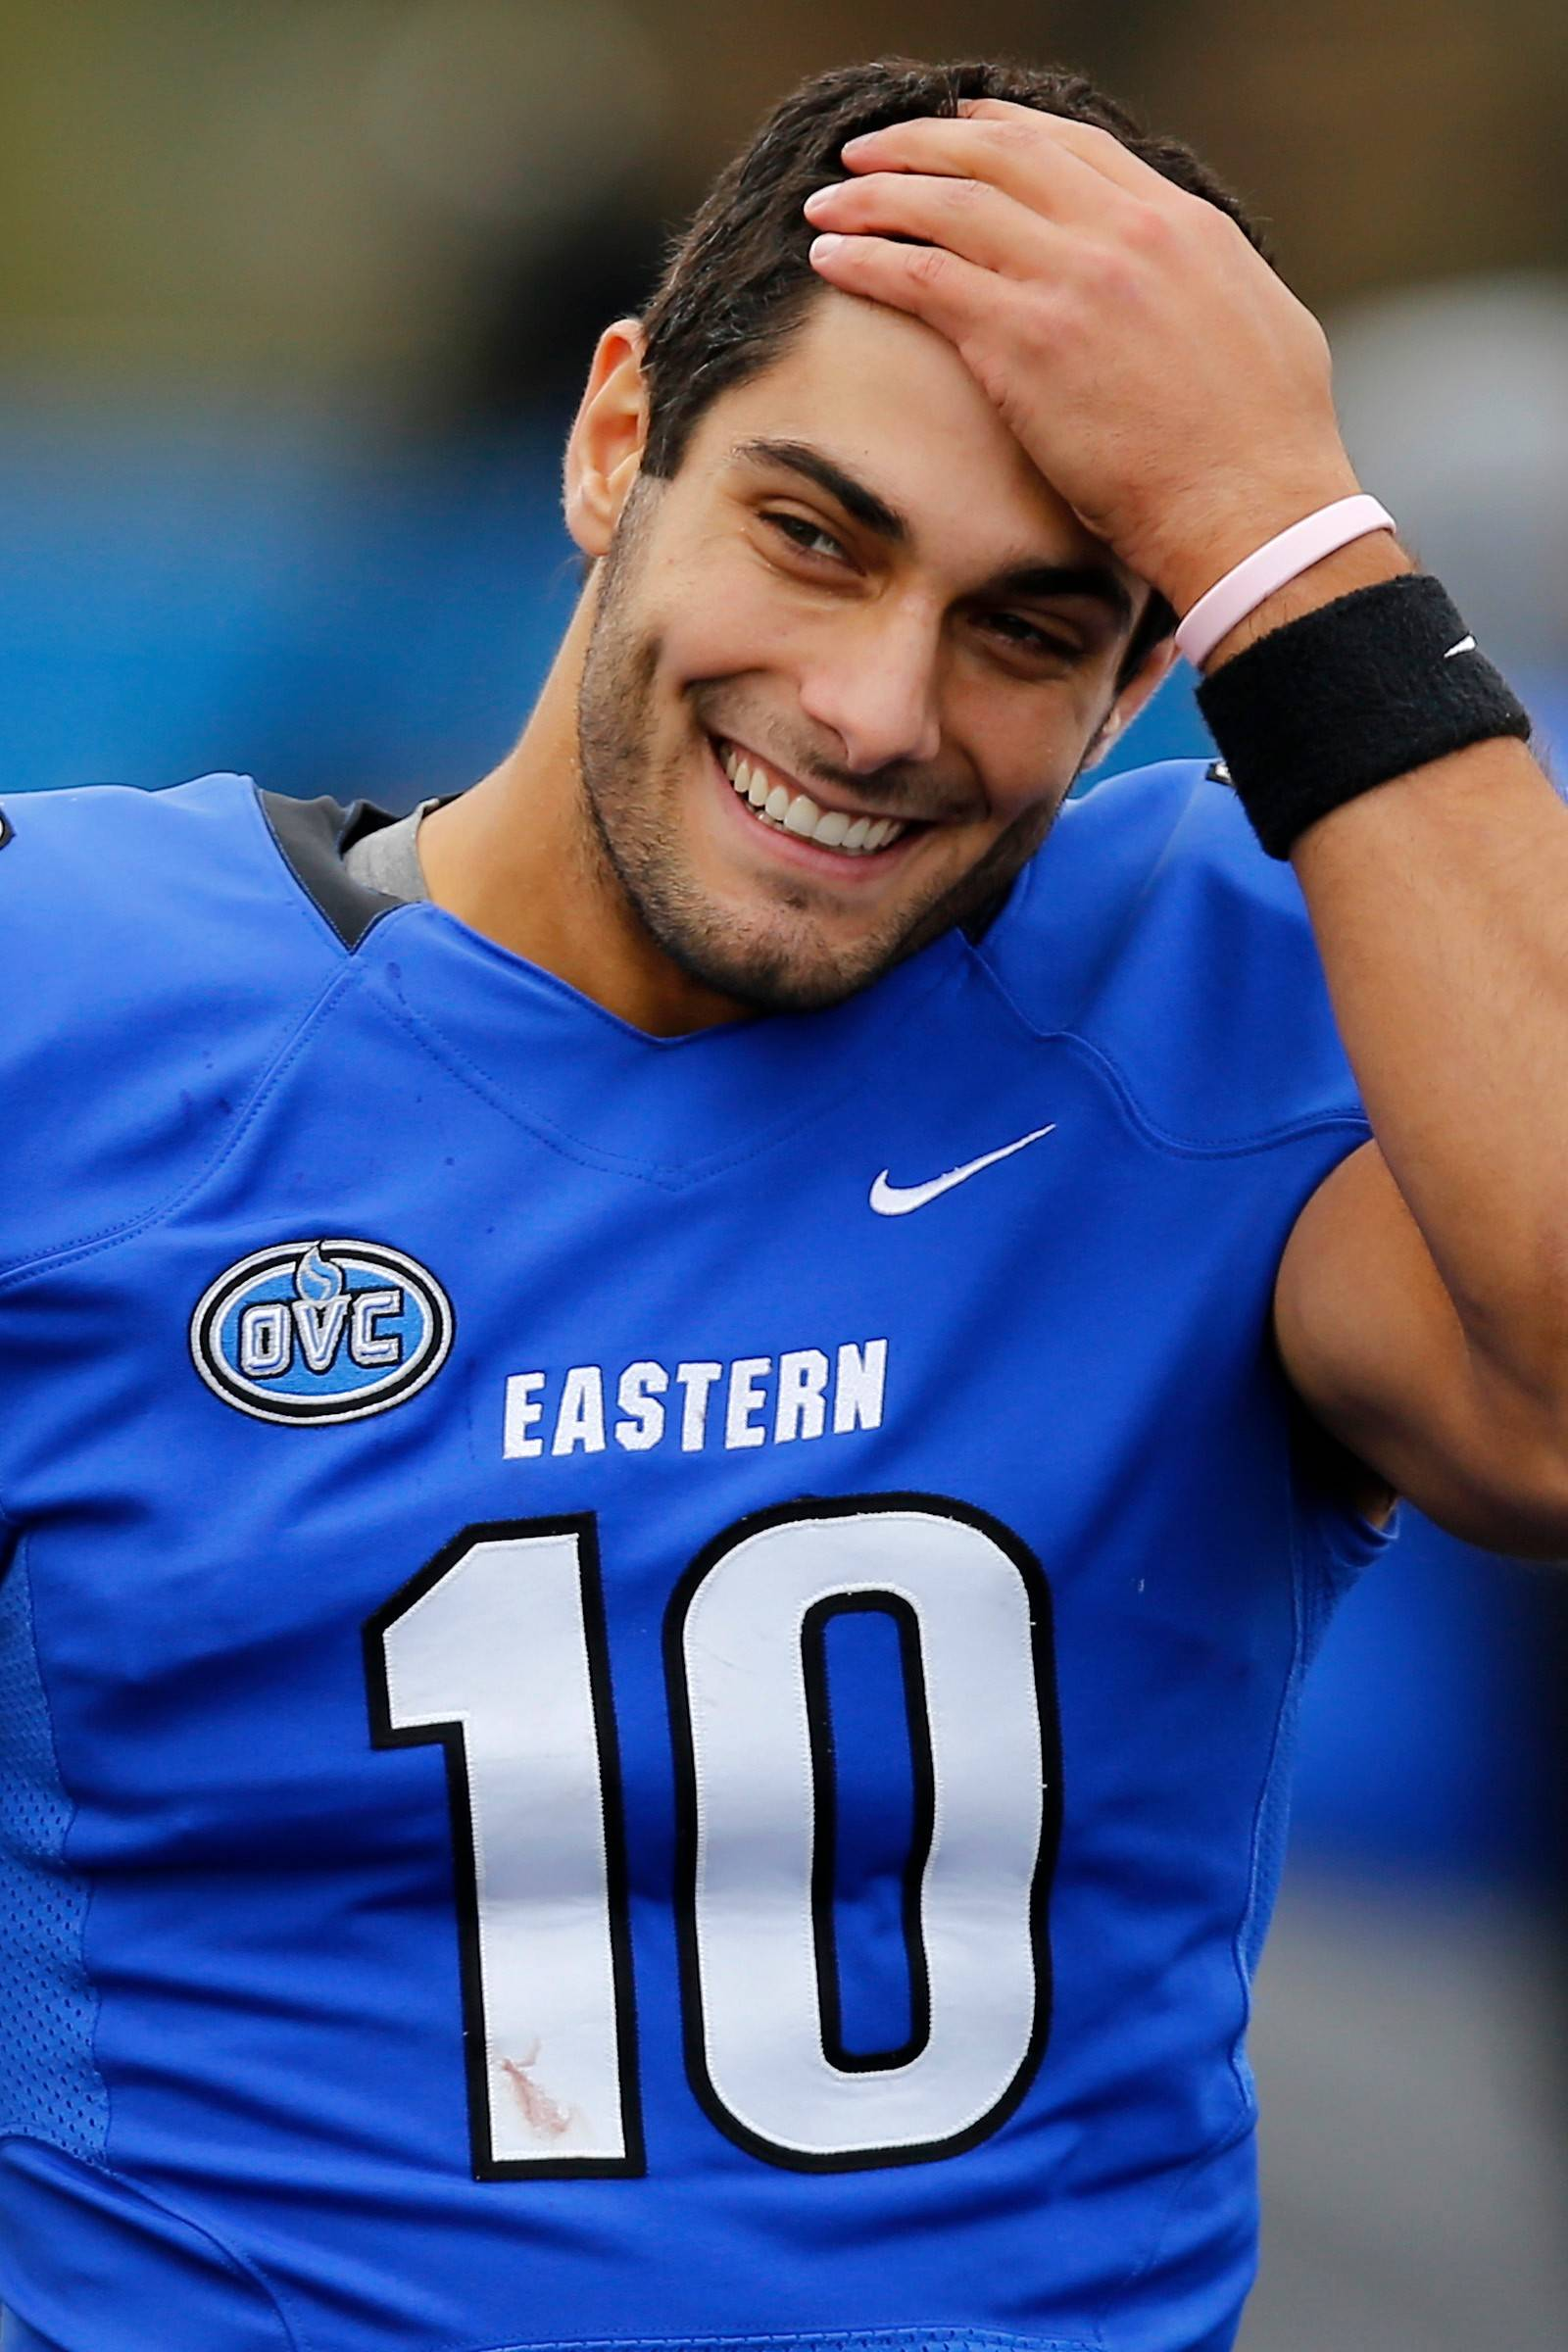 FILE - This Nov. 2, 2013 file photo shows Eastern Illinois quarterback Jimmy Garoppolo on the sideline during the second half of an NCAA football game against Tennessee Tech at O'Brien Field in Charleston, Ill. Garoppolo and fellow Walter Payton Award finalist Terrance West of Towson have been selected to The Associated Press FCS All-America team, Wednesday, Dec. 18, 2013. (AP Photo/ Stephen Haas, File)